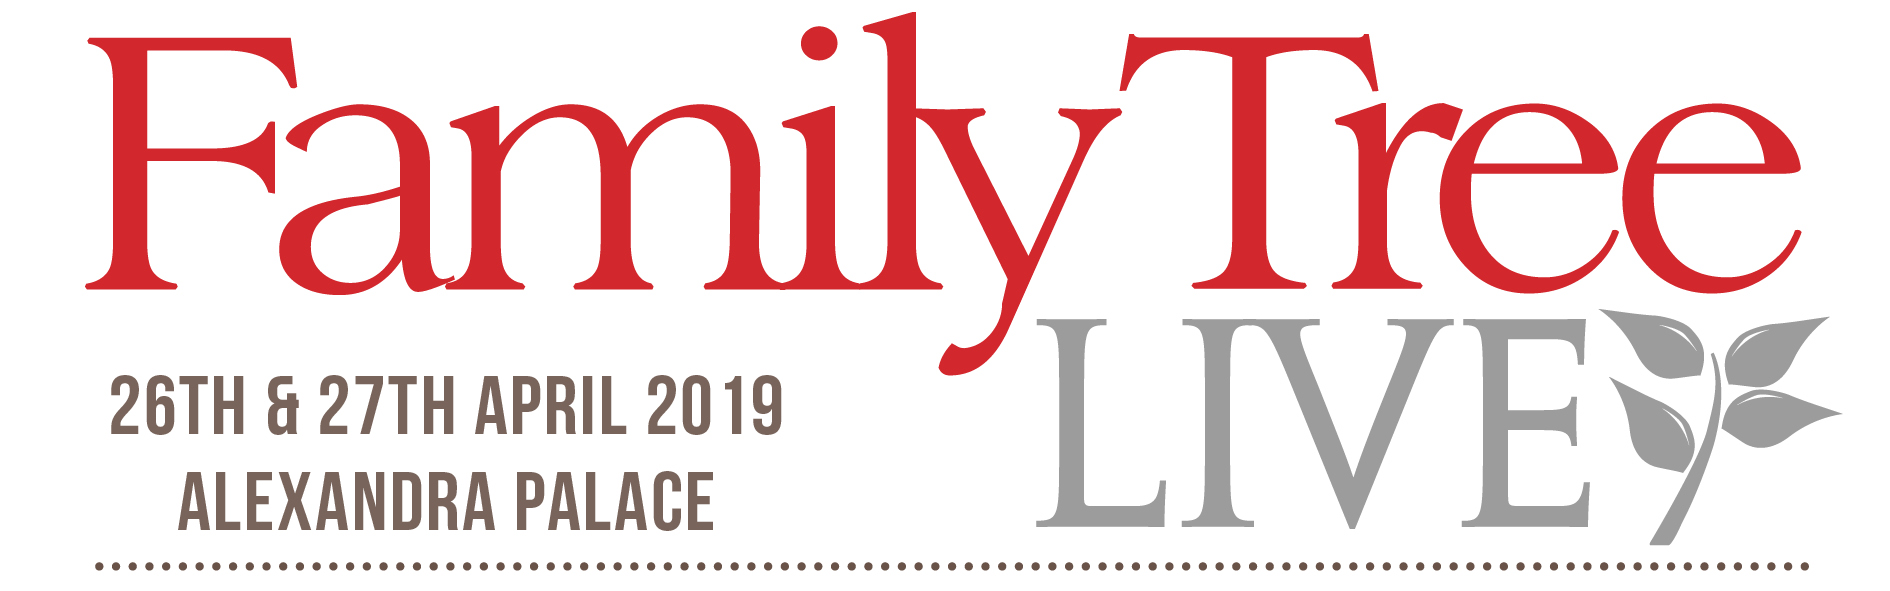 Family Tree Live – London – 26th – 27th April 2019 - Warners Group